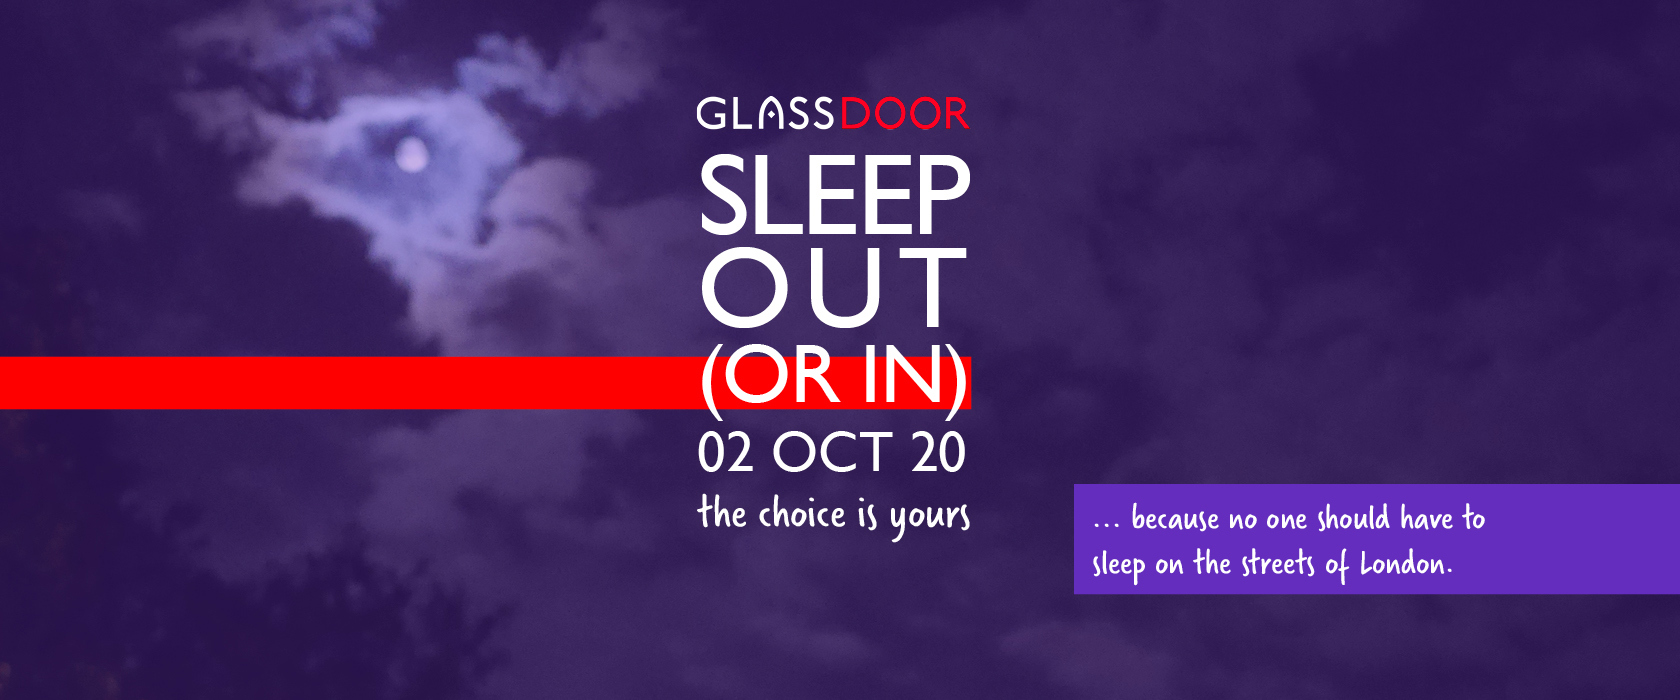 Jenny Welsh's Sleep Out (or in) fundraising page